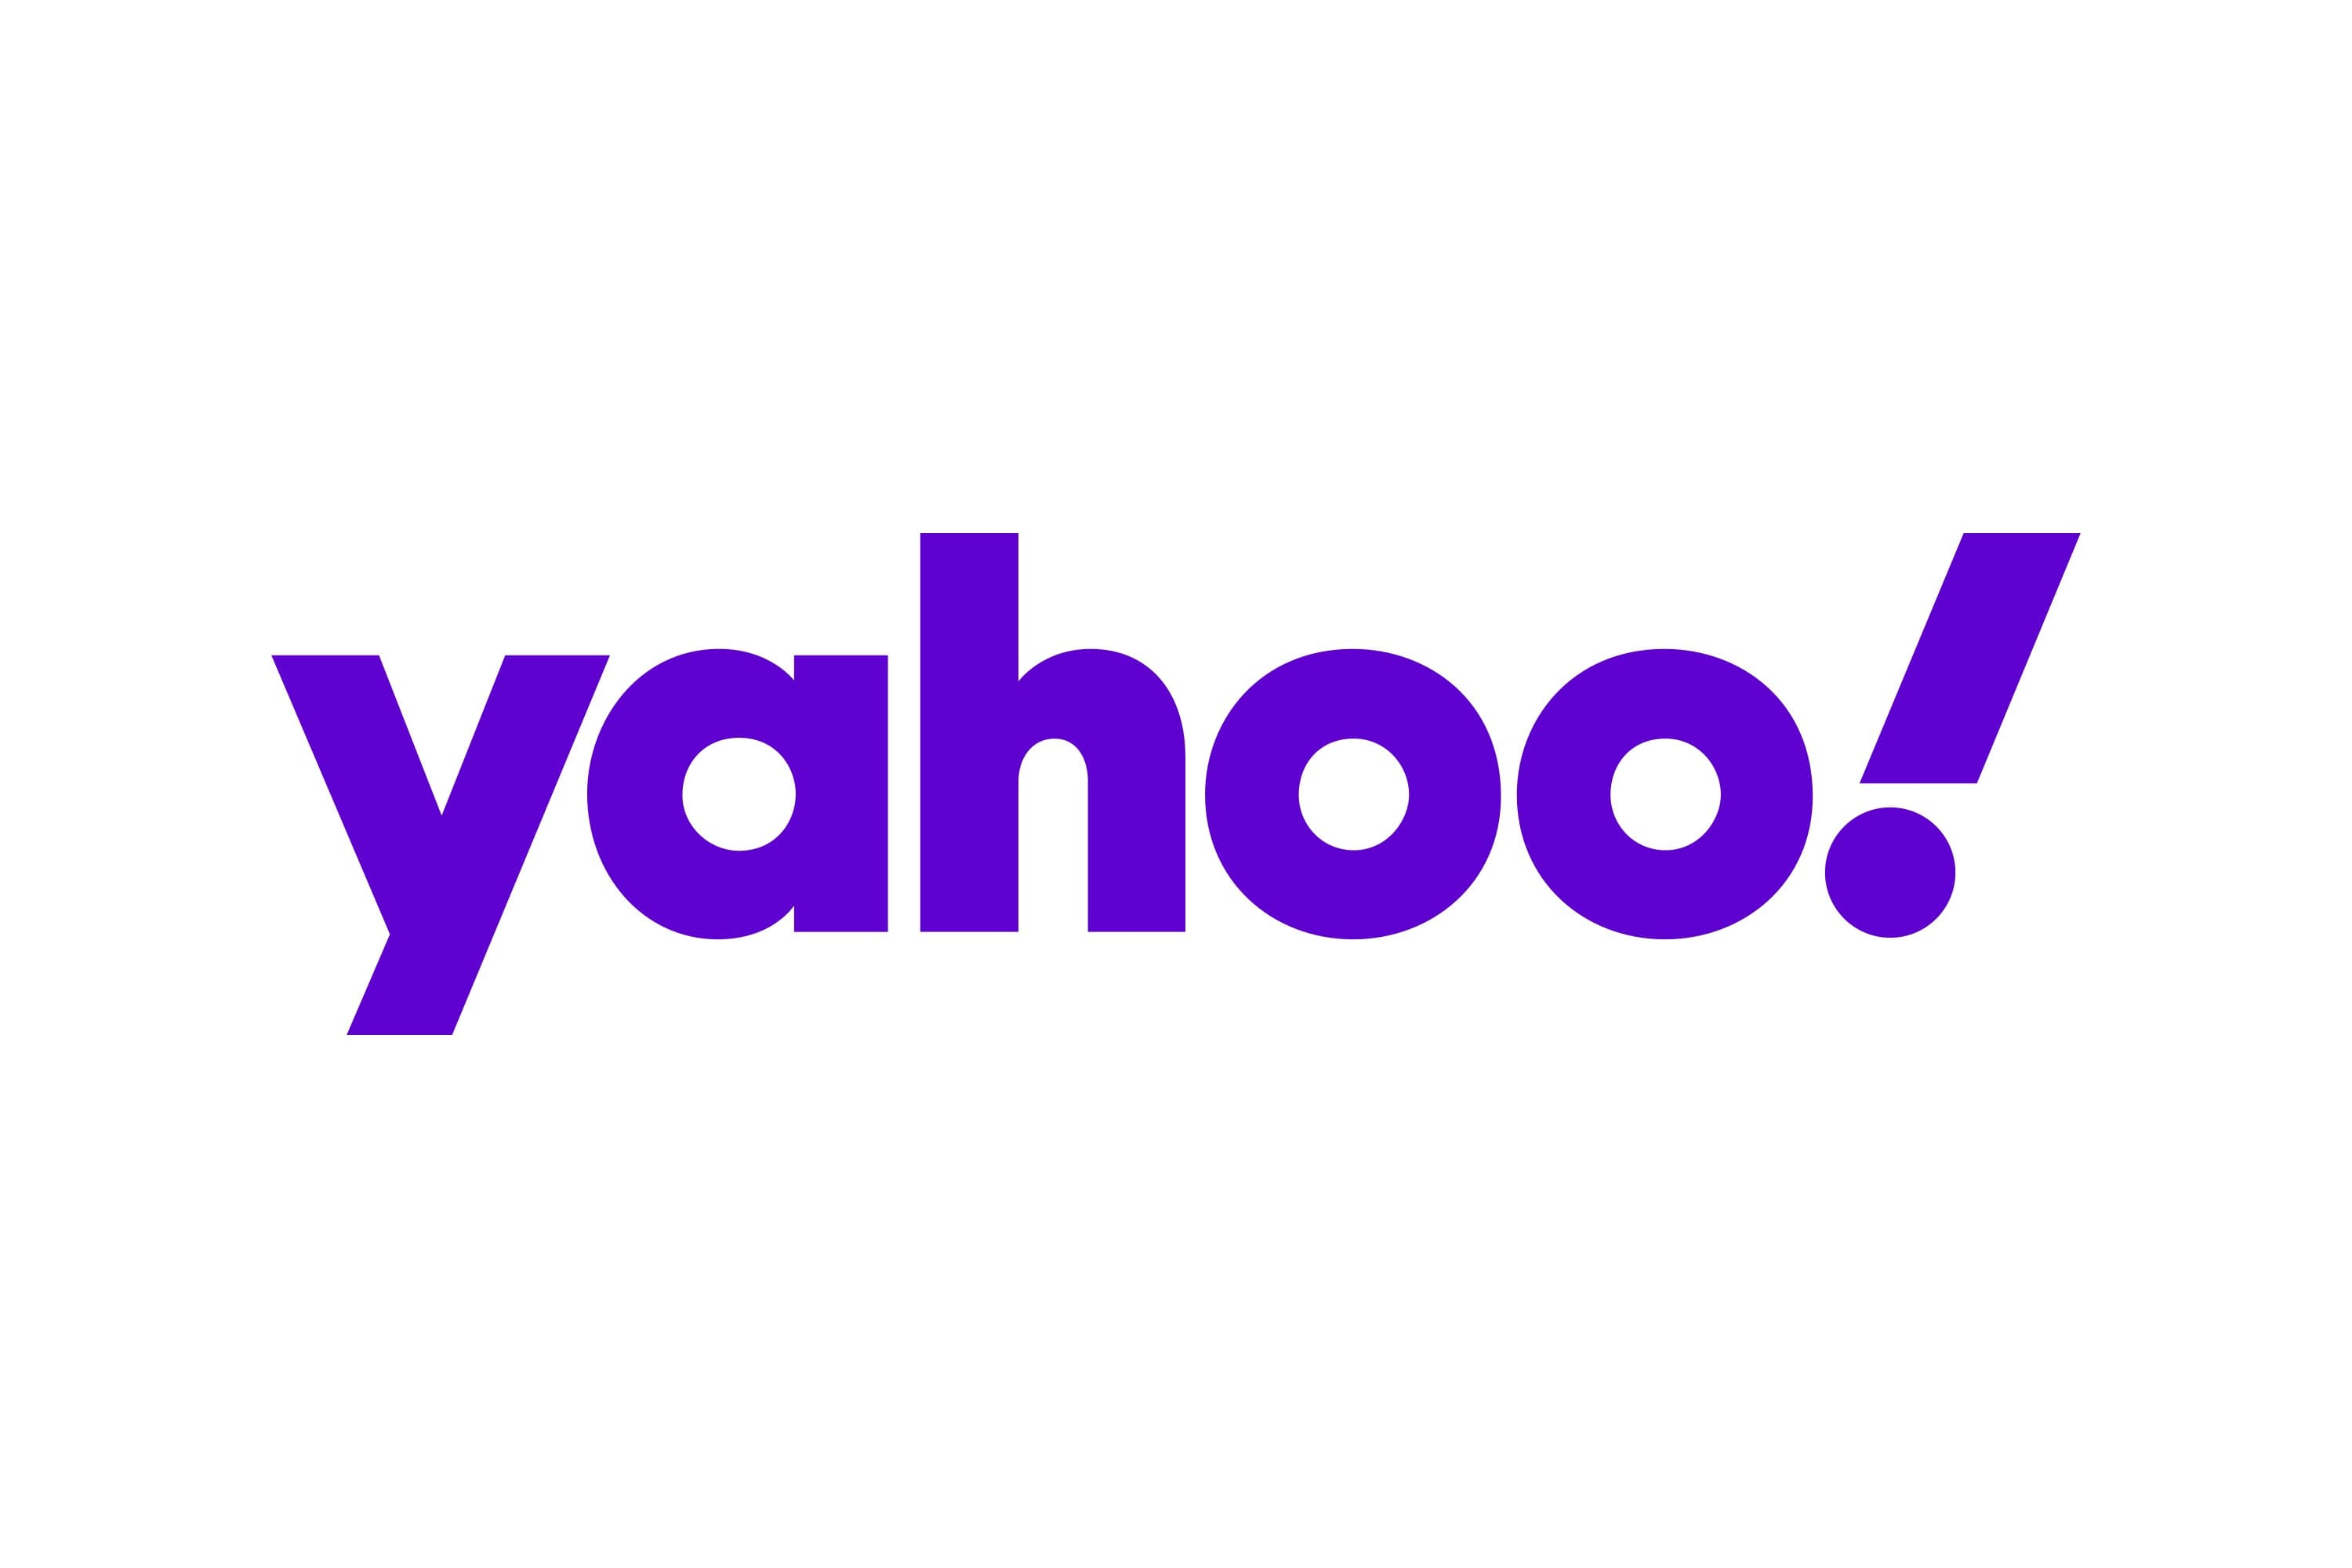 Yahoo Logo, Yahoo Symbol, Meaning, History and Evolution - photo#6